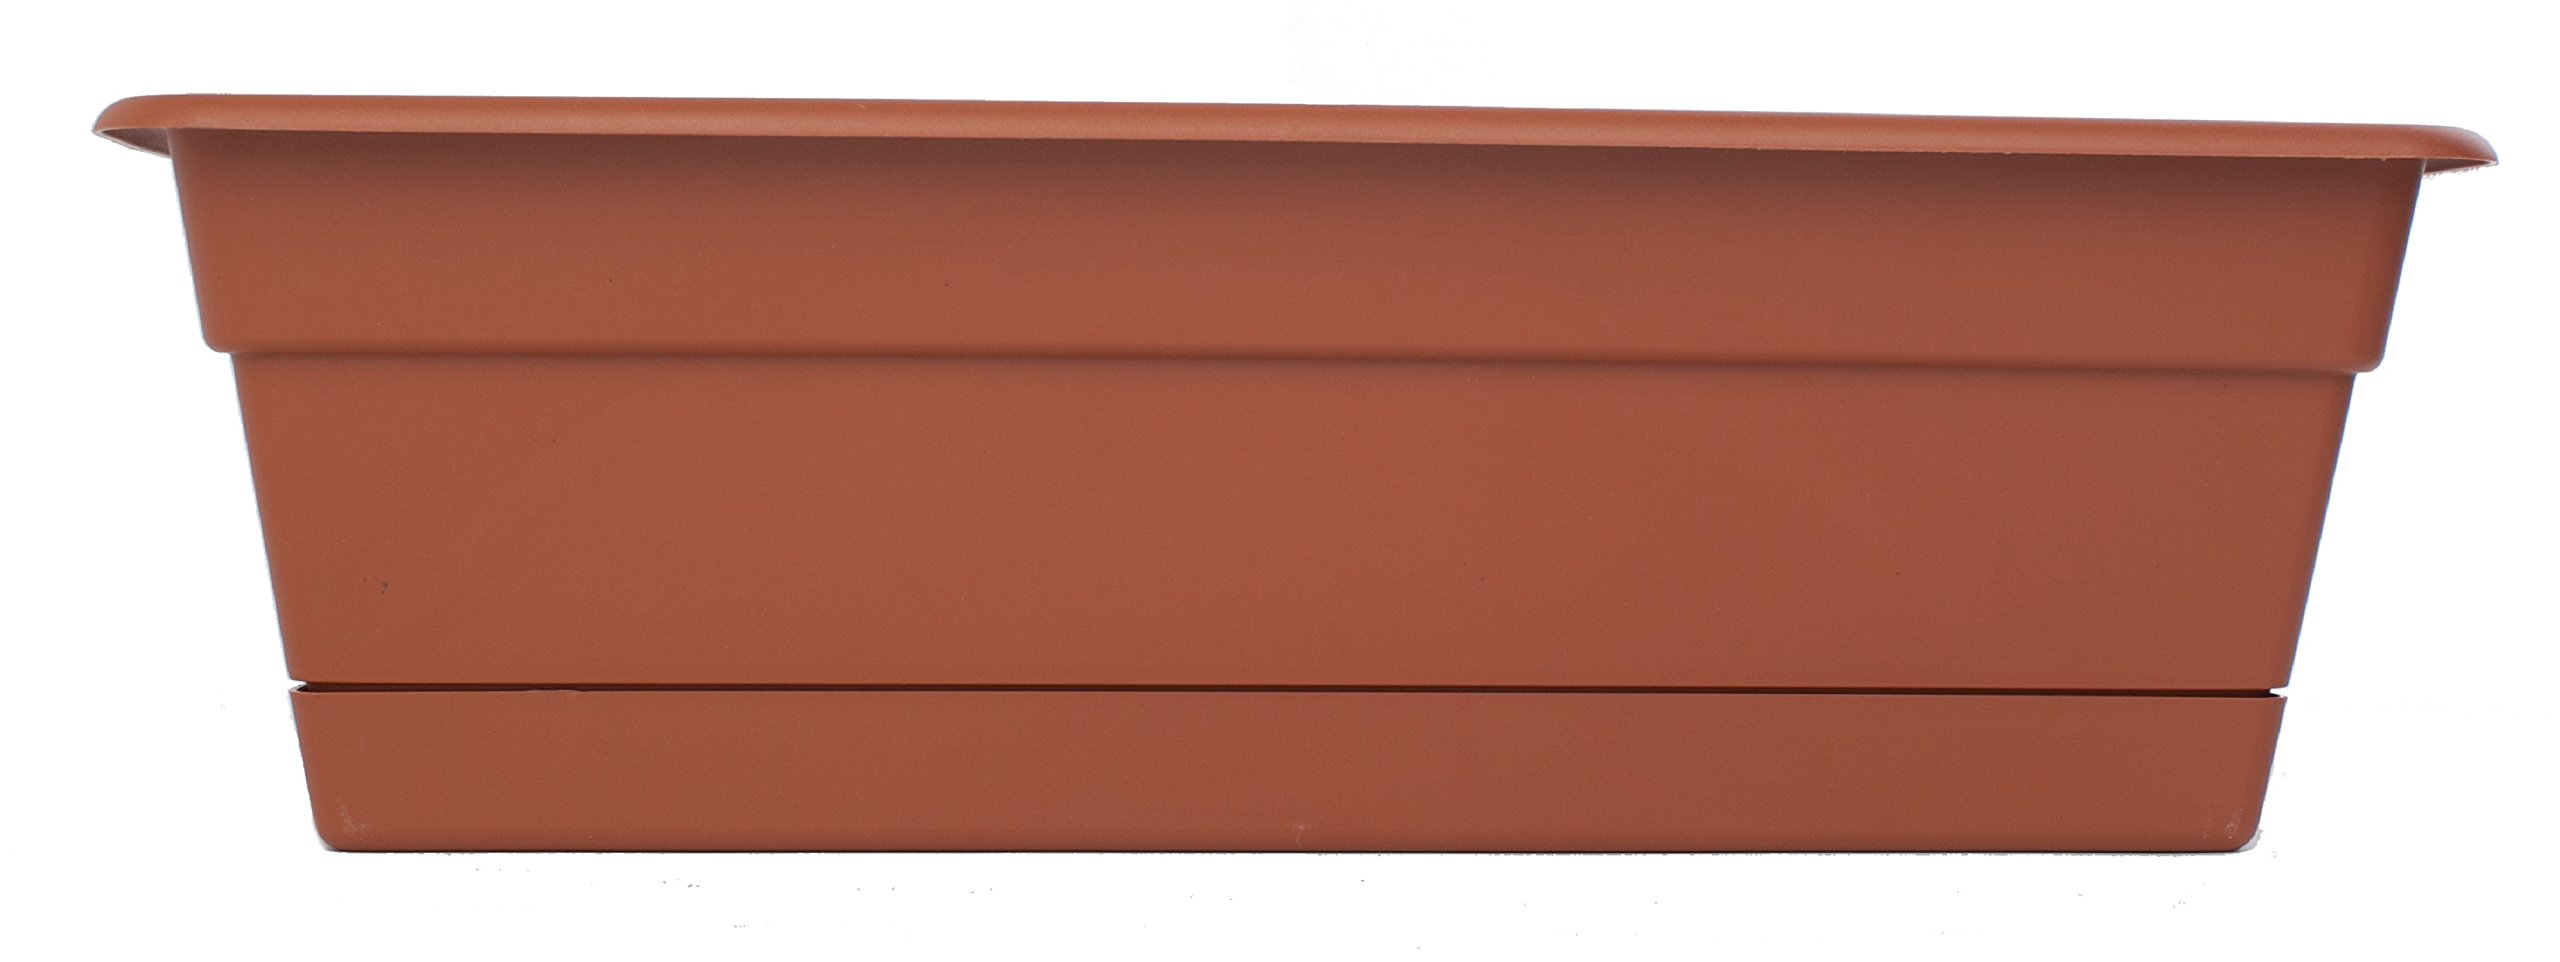 Bloem DCBT24-46 Dura Cotta Plant Window Box, 24-Inch, Terra Cotta by Bloem